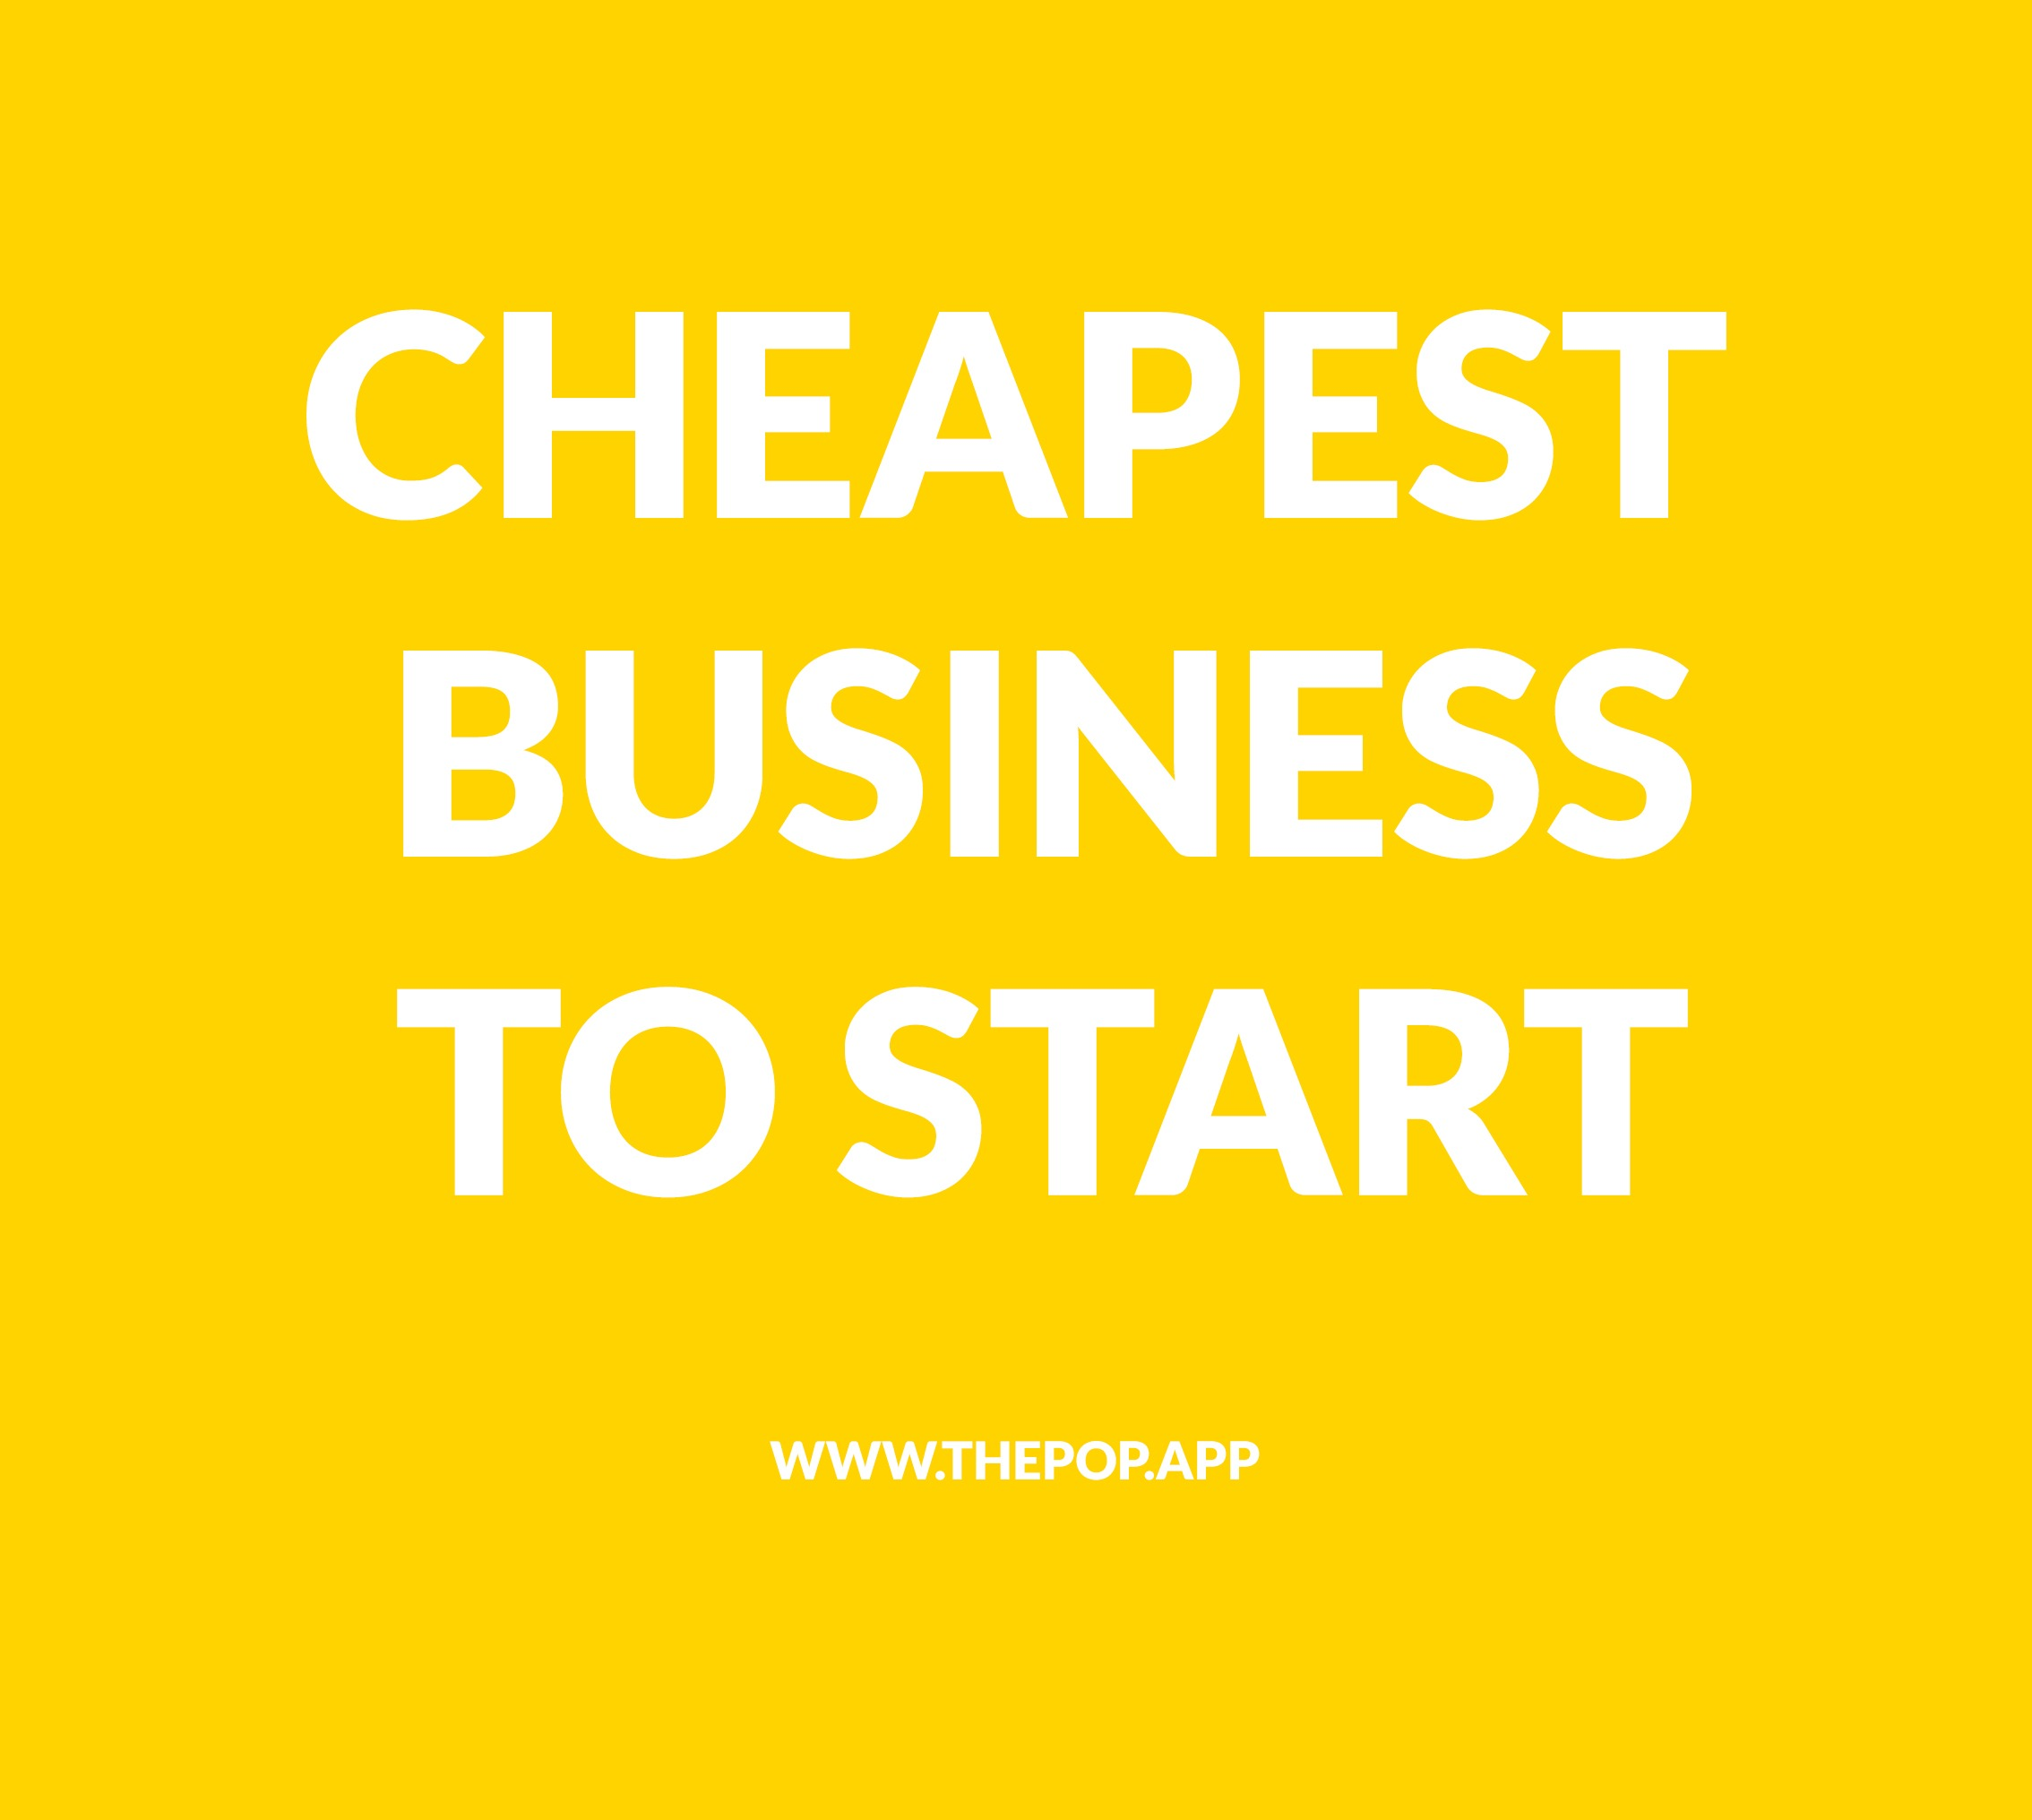 Cheapest Business to Start